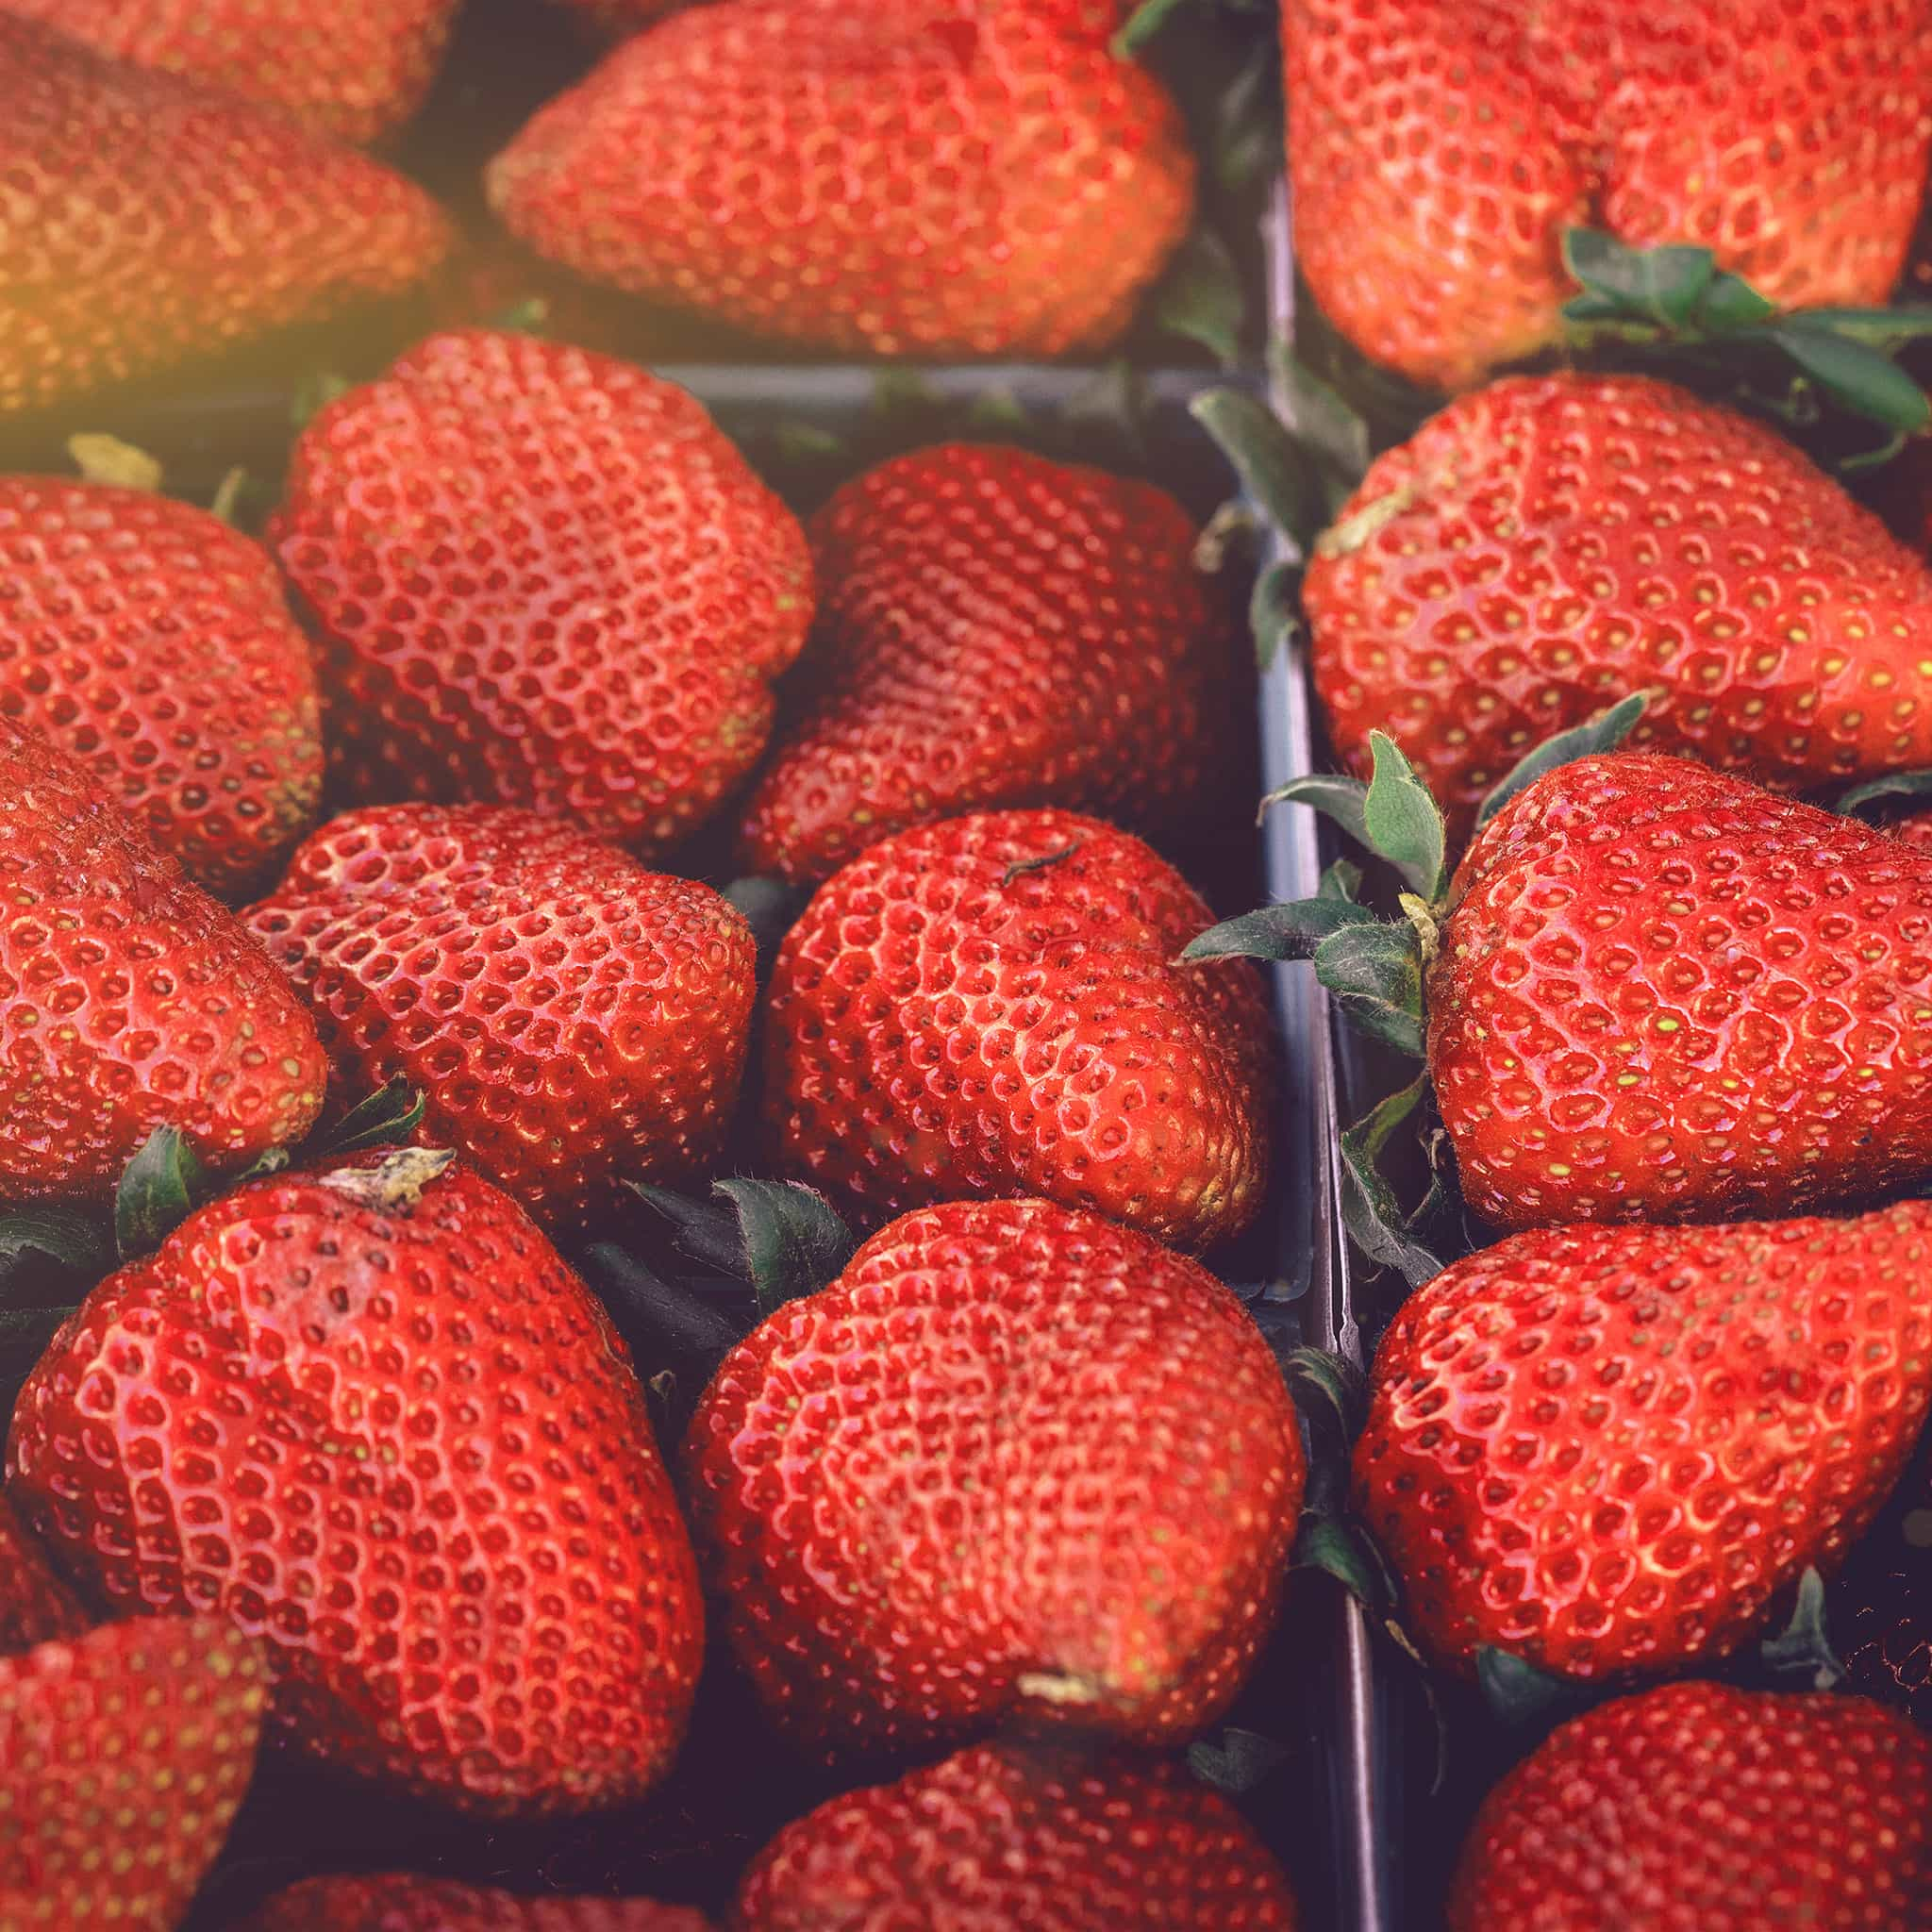 Papers.co-nc19-strawberry-red-fruit-nature-spring-flare-delicious-android-medium